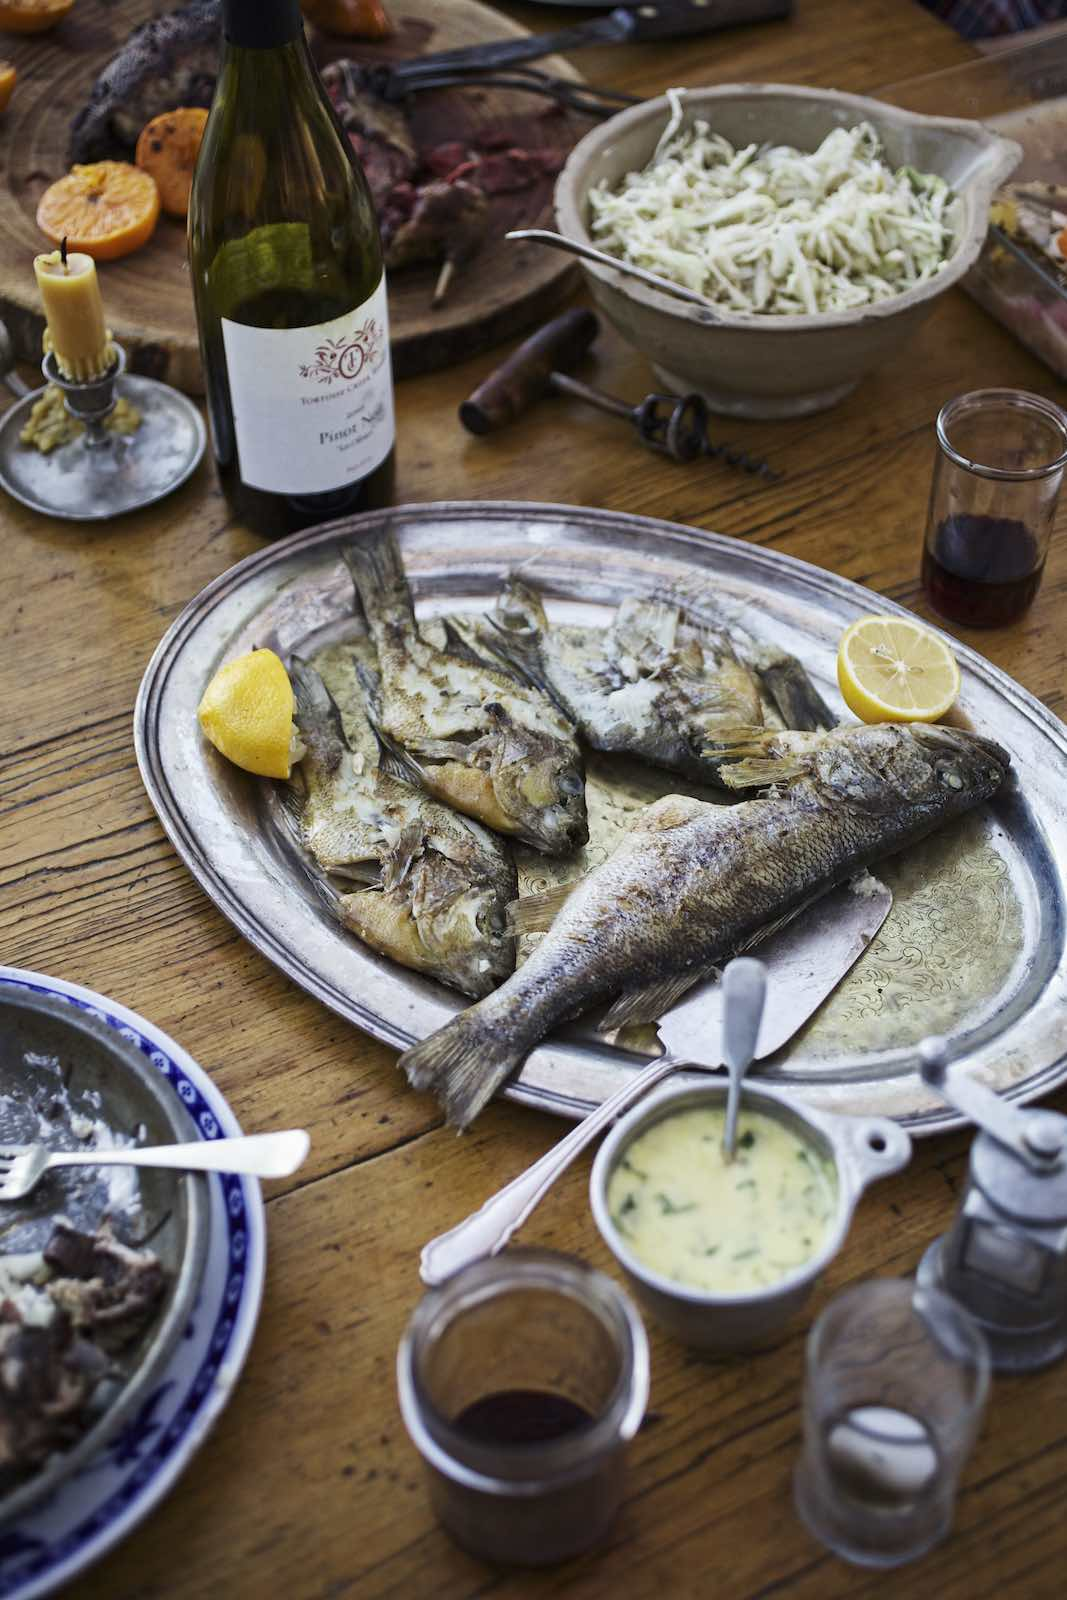 Jody Horton Photography - Whole cooked fish among a sprawling dinner spread.